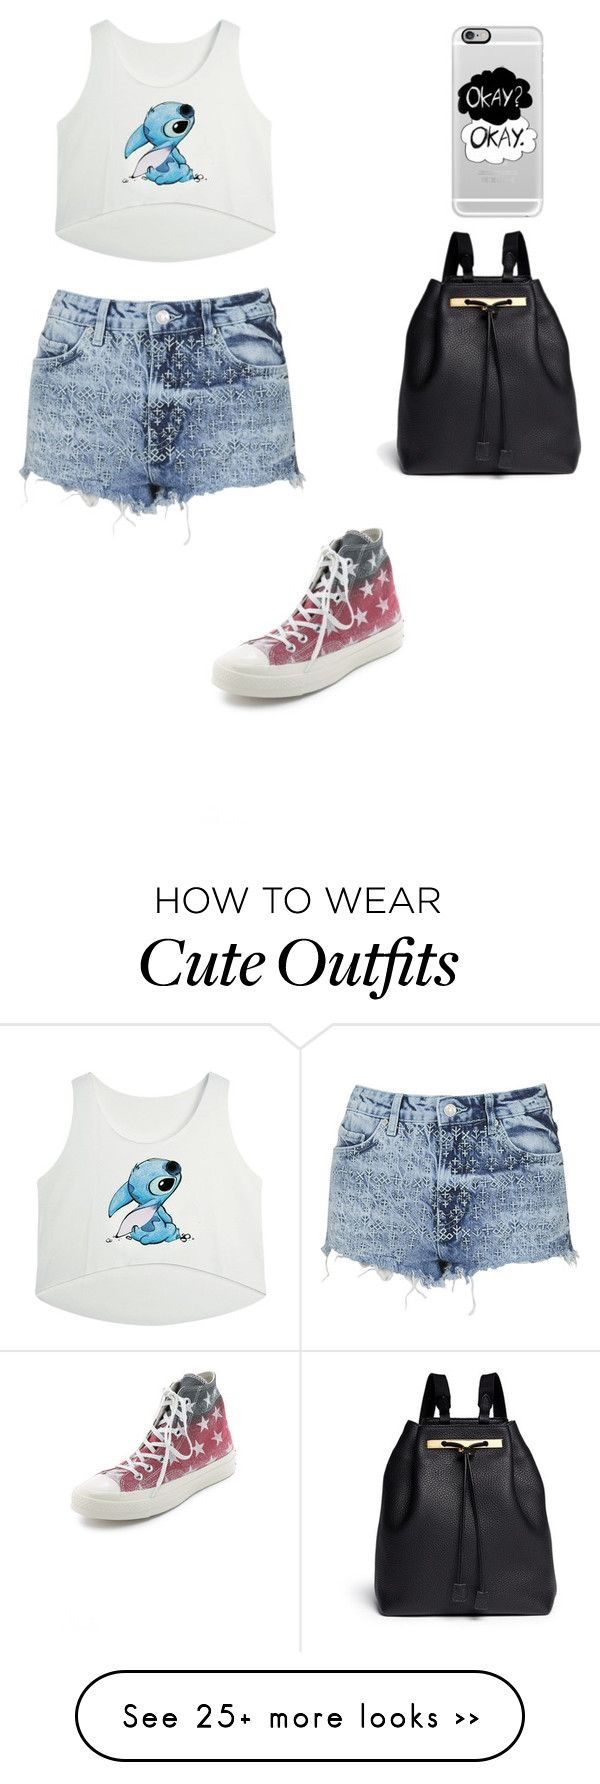 """First Outfit!"" by ireneadysti on Polyvore featuring Topshop, Converse, The Row and Casetify"